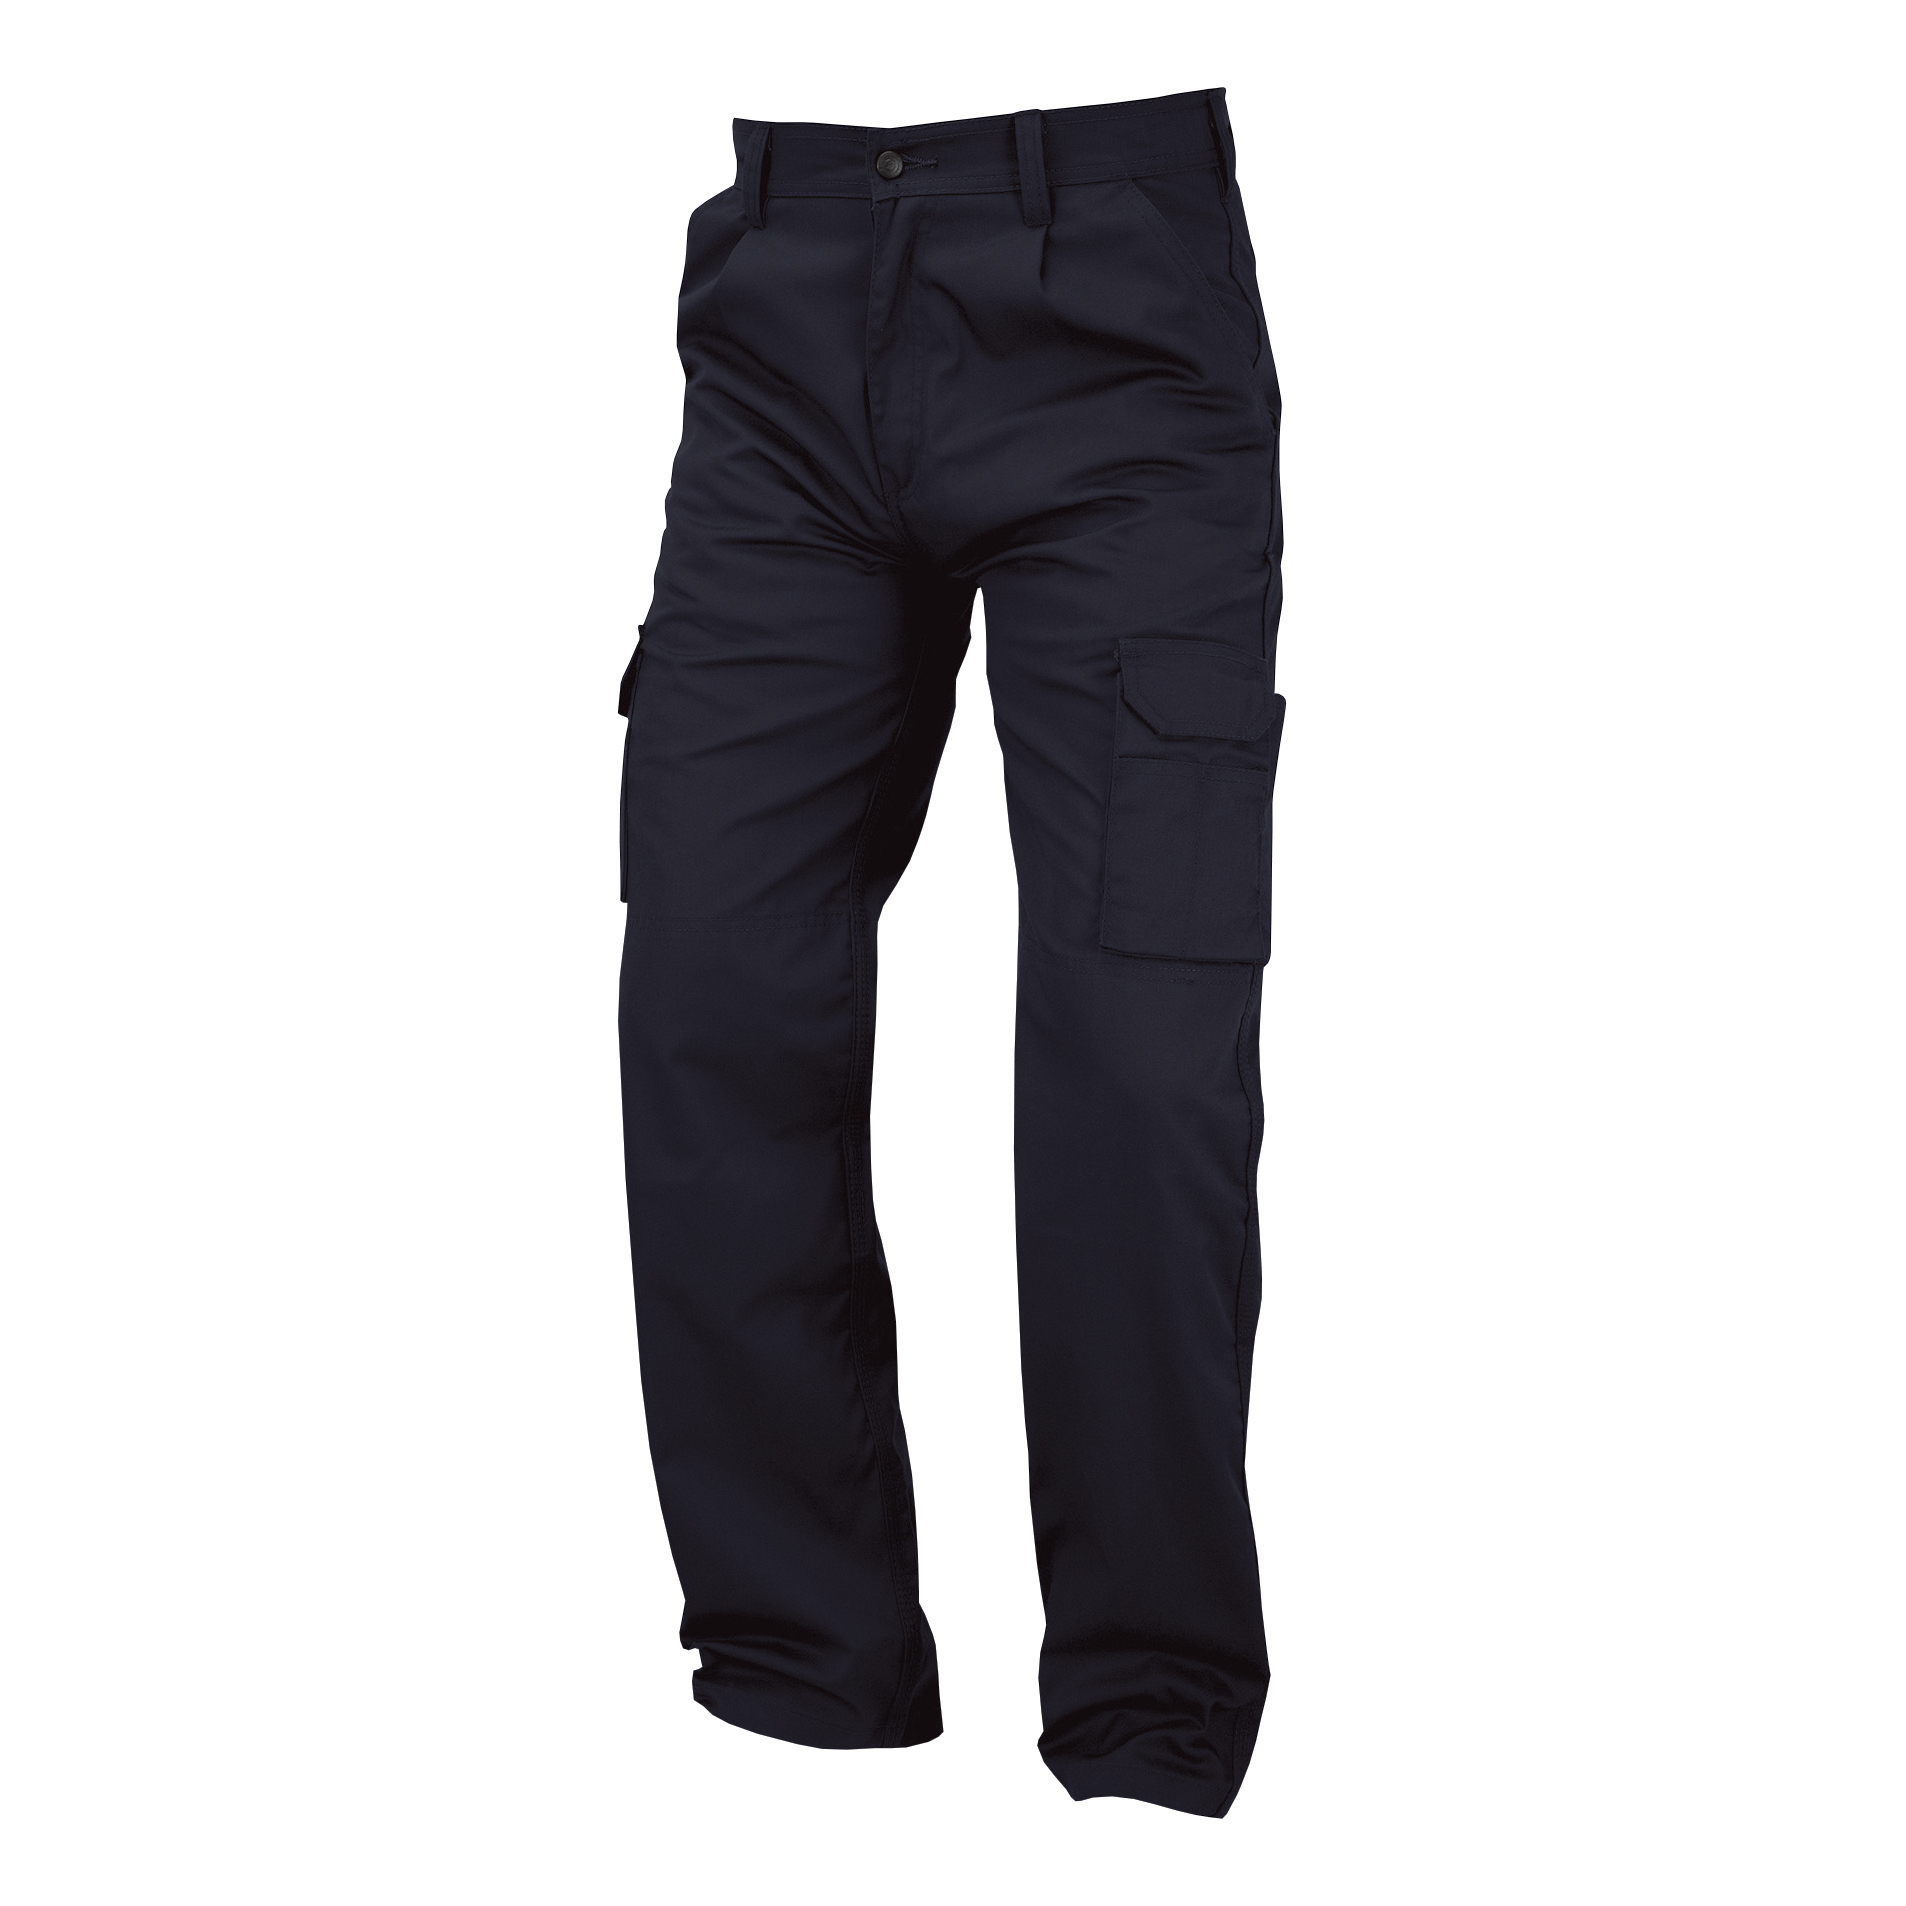 Combat Trousers Polycotton Multifunctional 28in Tall Navy Blue Ref PCTHWN28T *Approx 3 Day Leadtime*